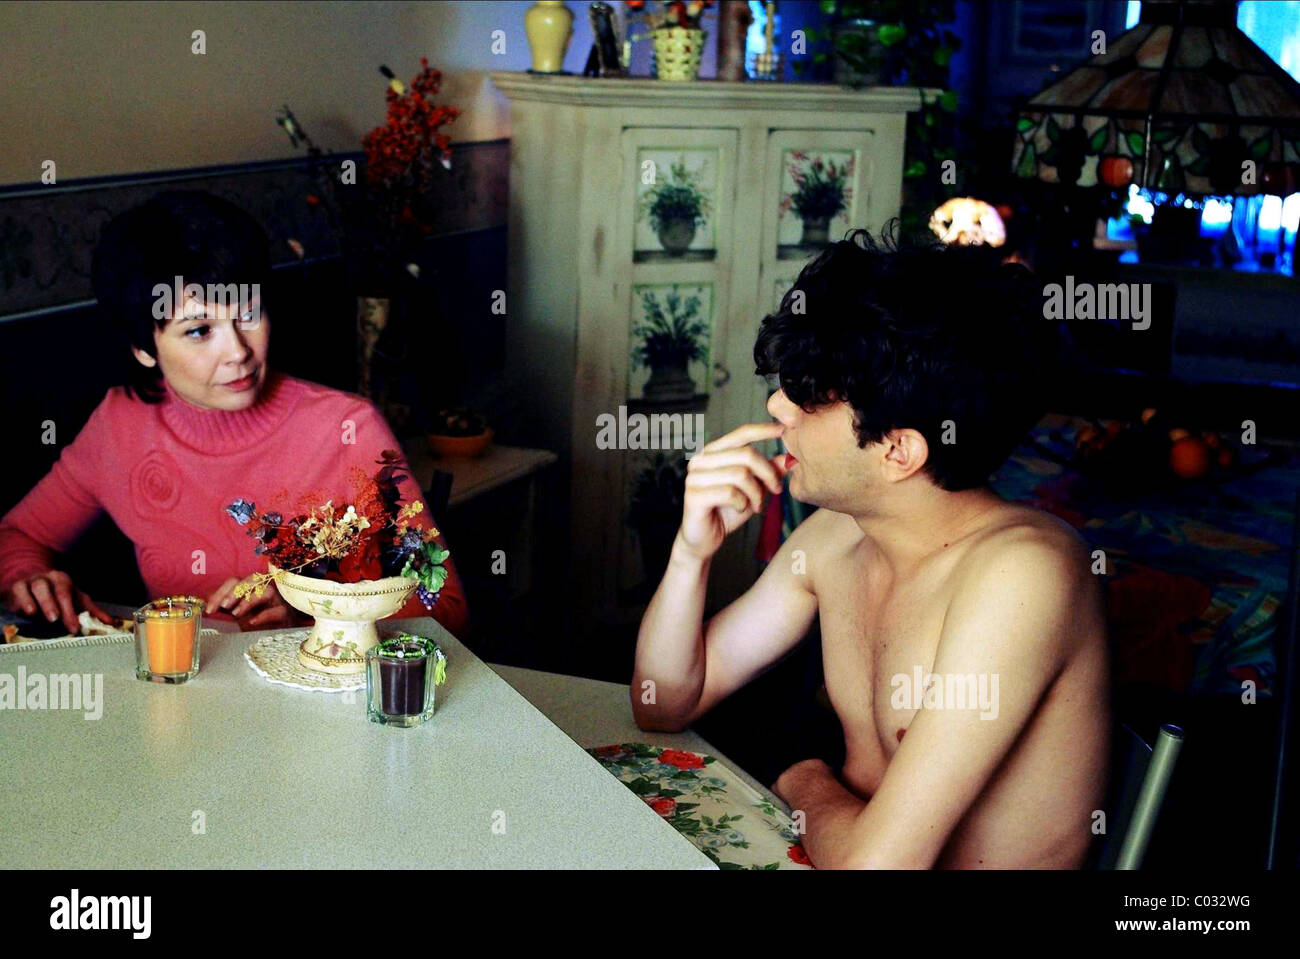 ANNE DORVAL & XAVIER DOLAN I KILLED MY MOTHER; J'AI TUE MA MERE (2009) - Stock Image